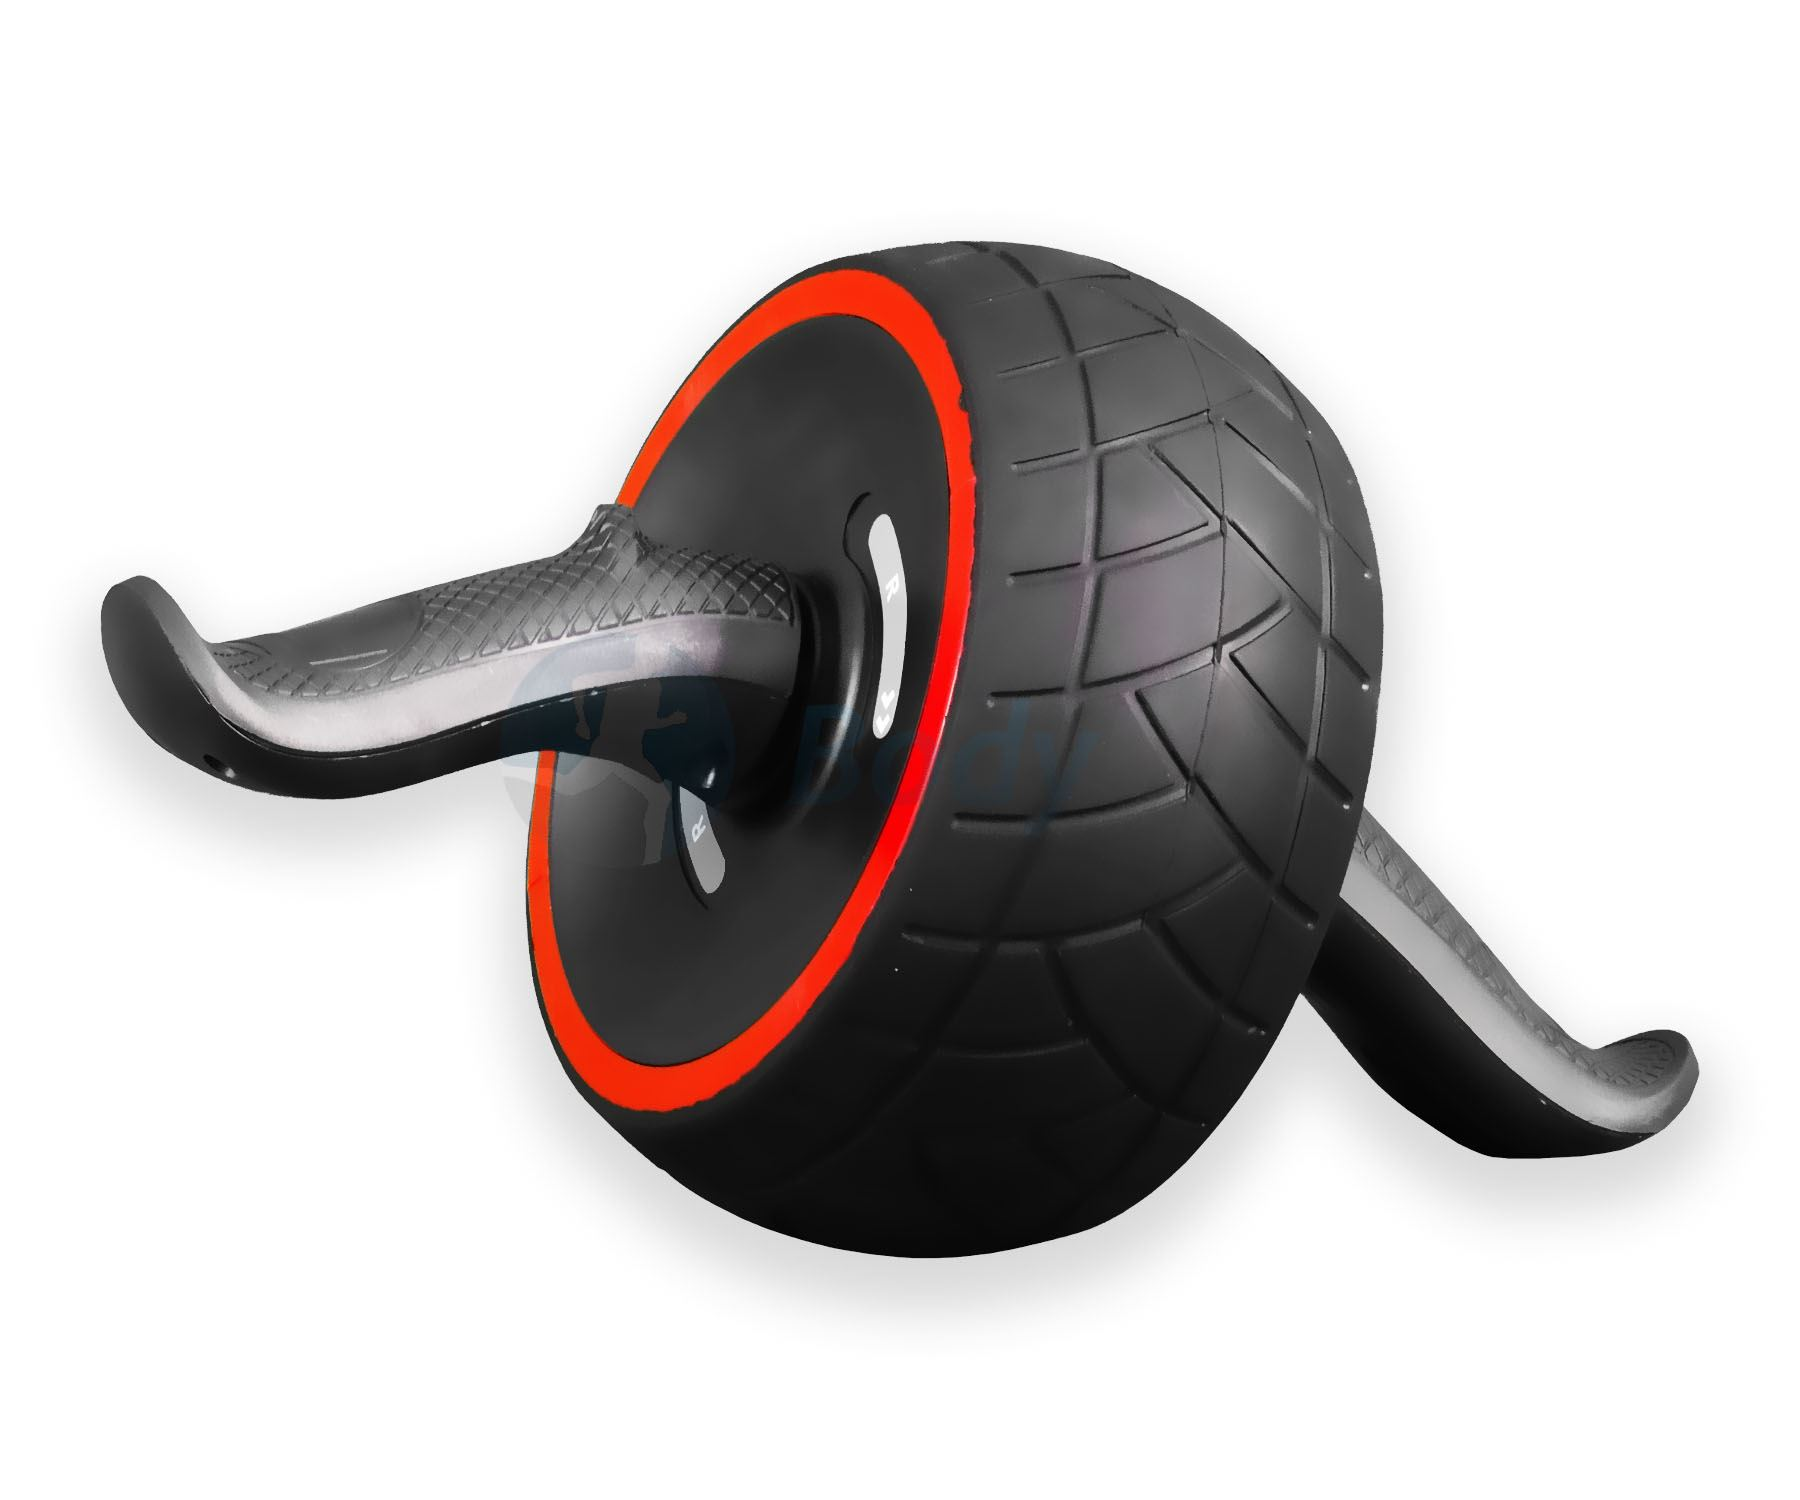 NUOVO-POTENTE-potere-ADDOMINALI-Carver-AB-HAND-GRIP-roller-wheel-HOME-GYM miniatura 5